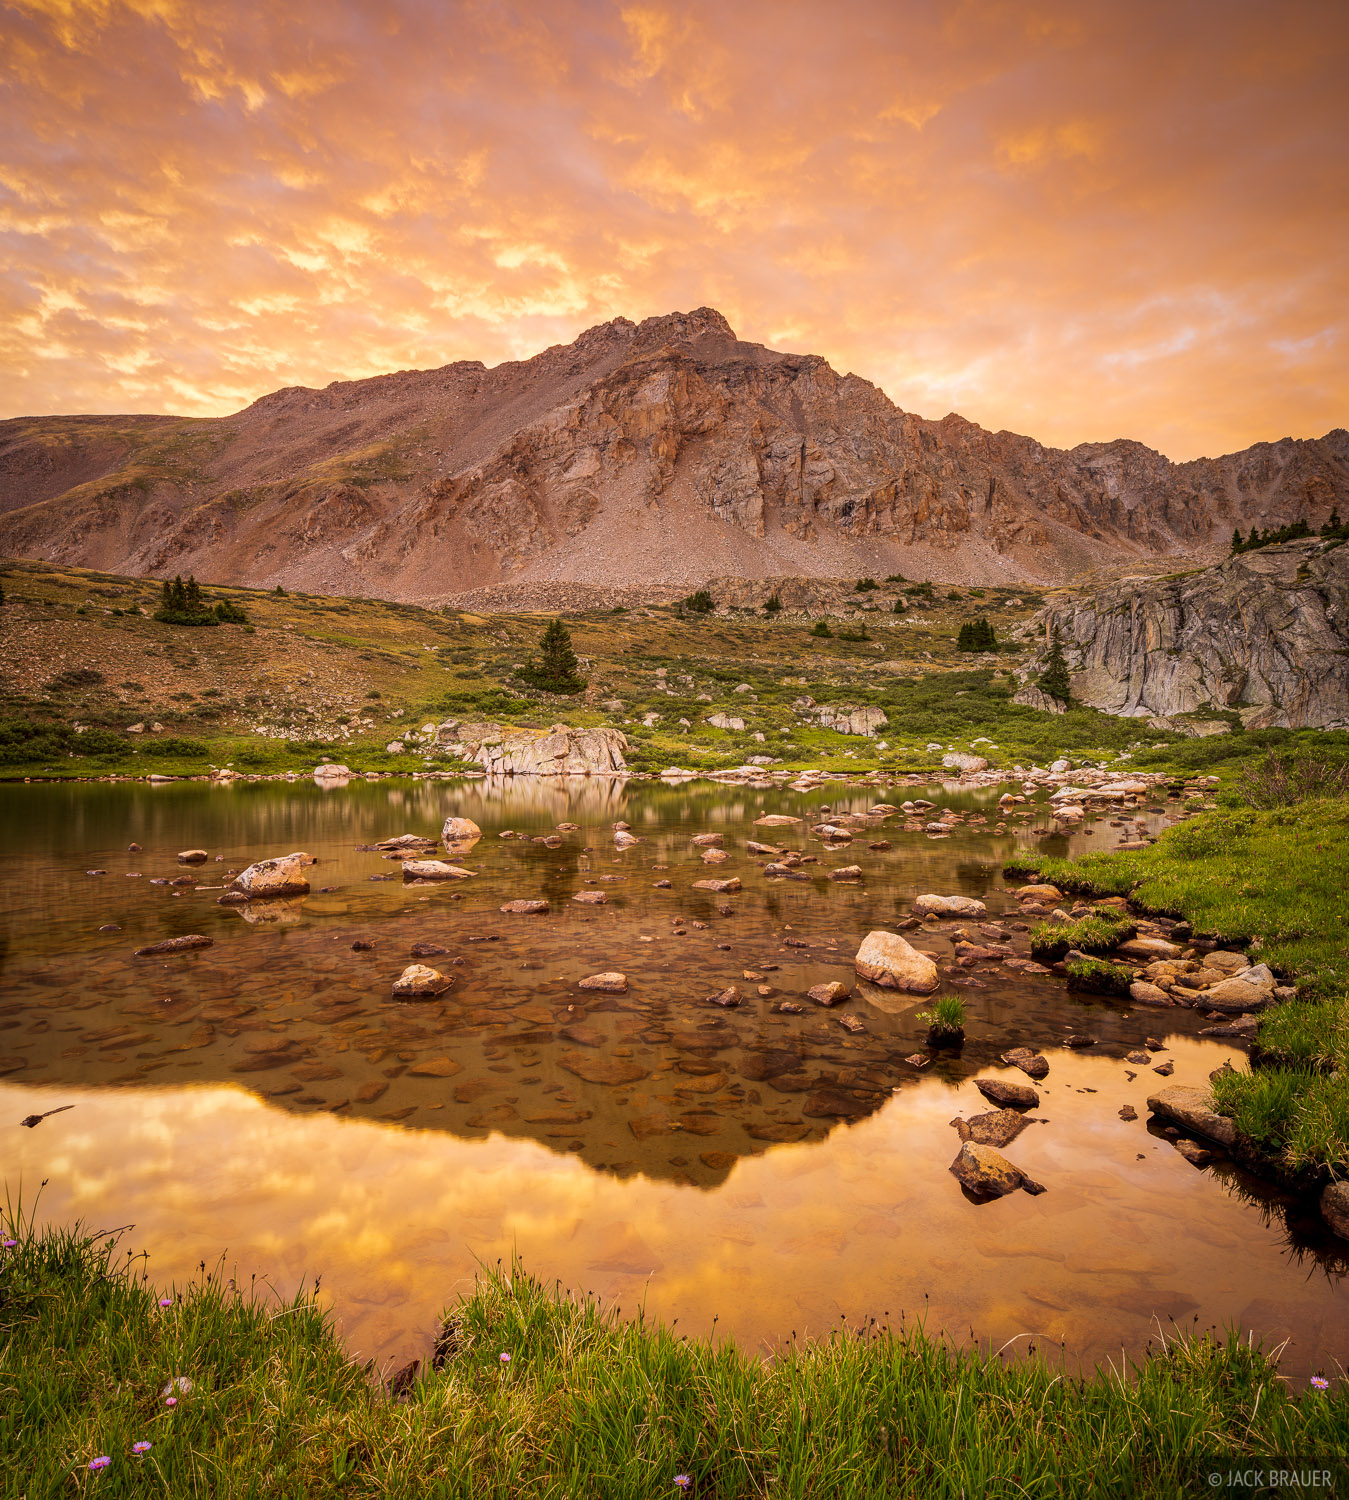 Collegiate Peaks Wilderness, Colorado, Missouri Basin, Mount Harvard, Sawatch Range, 14er, sunrise, photo